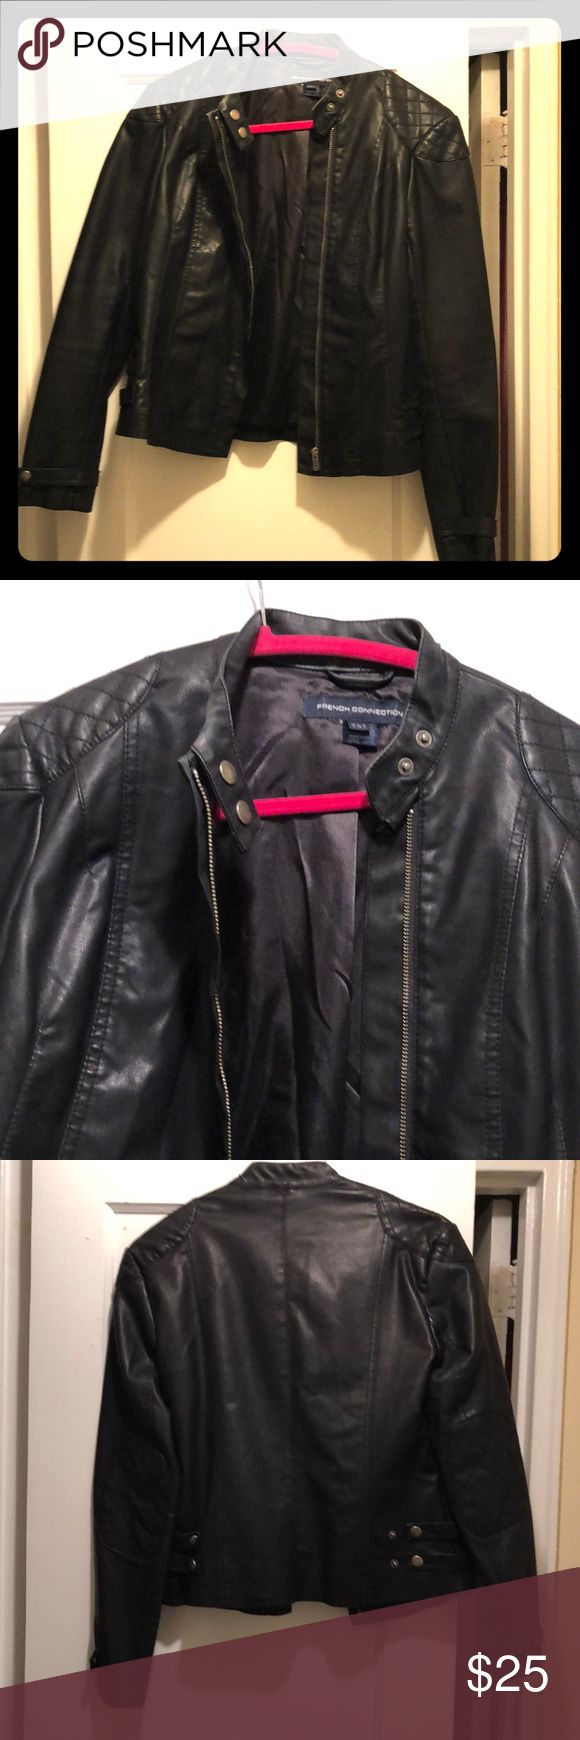 French Connection Leather Motorcycle Jacket French Connection Faux- Leather Motorcycle Jacket French Connection Jackets & Coats